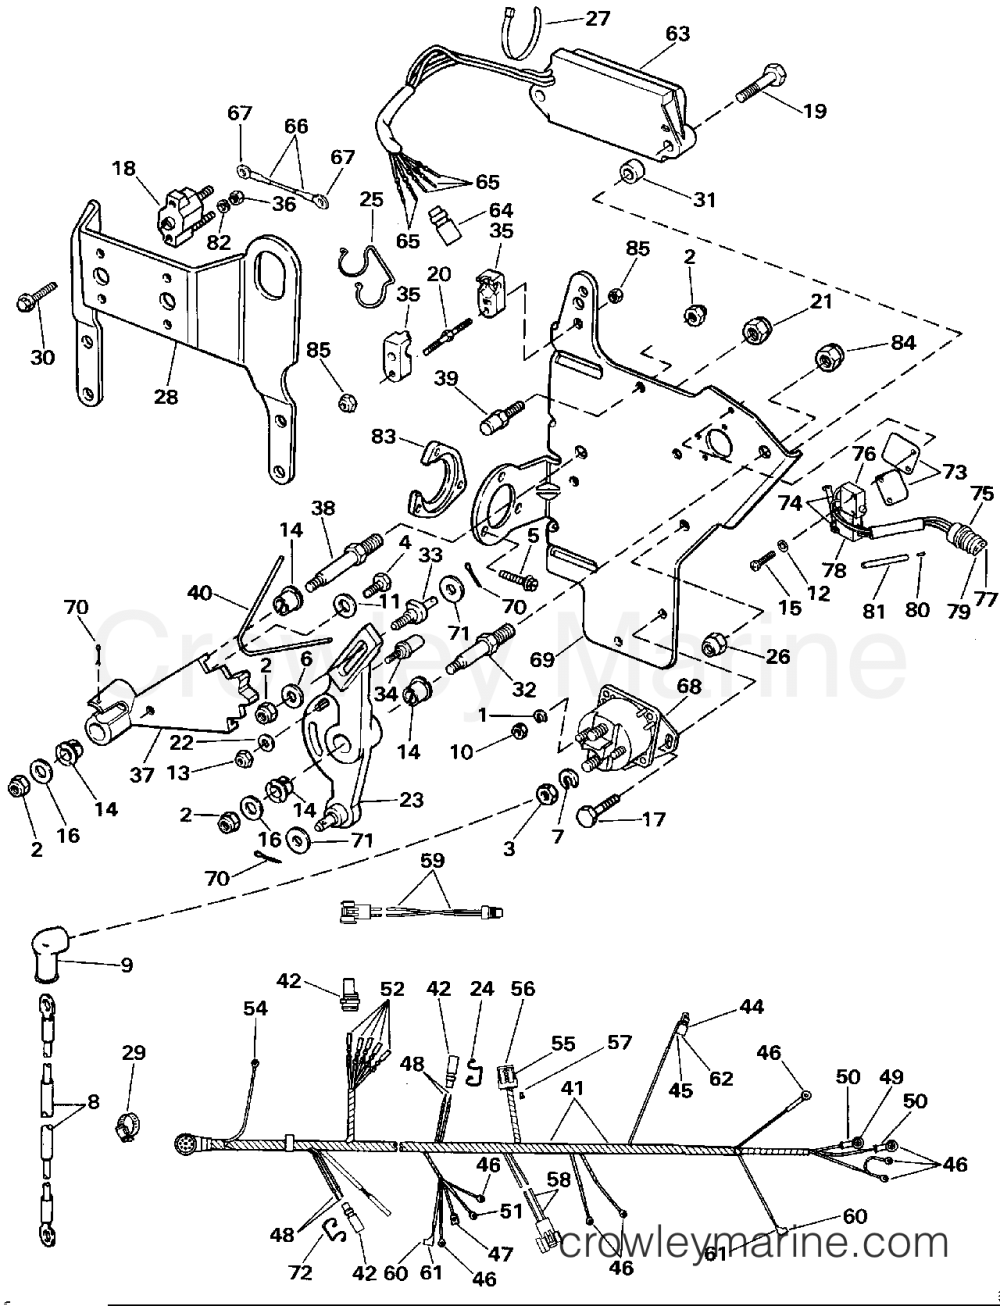 medium resolution of 1991 omc stern drive 3 302bmrrgd wire harness bracket solenoid section